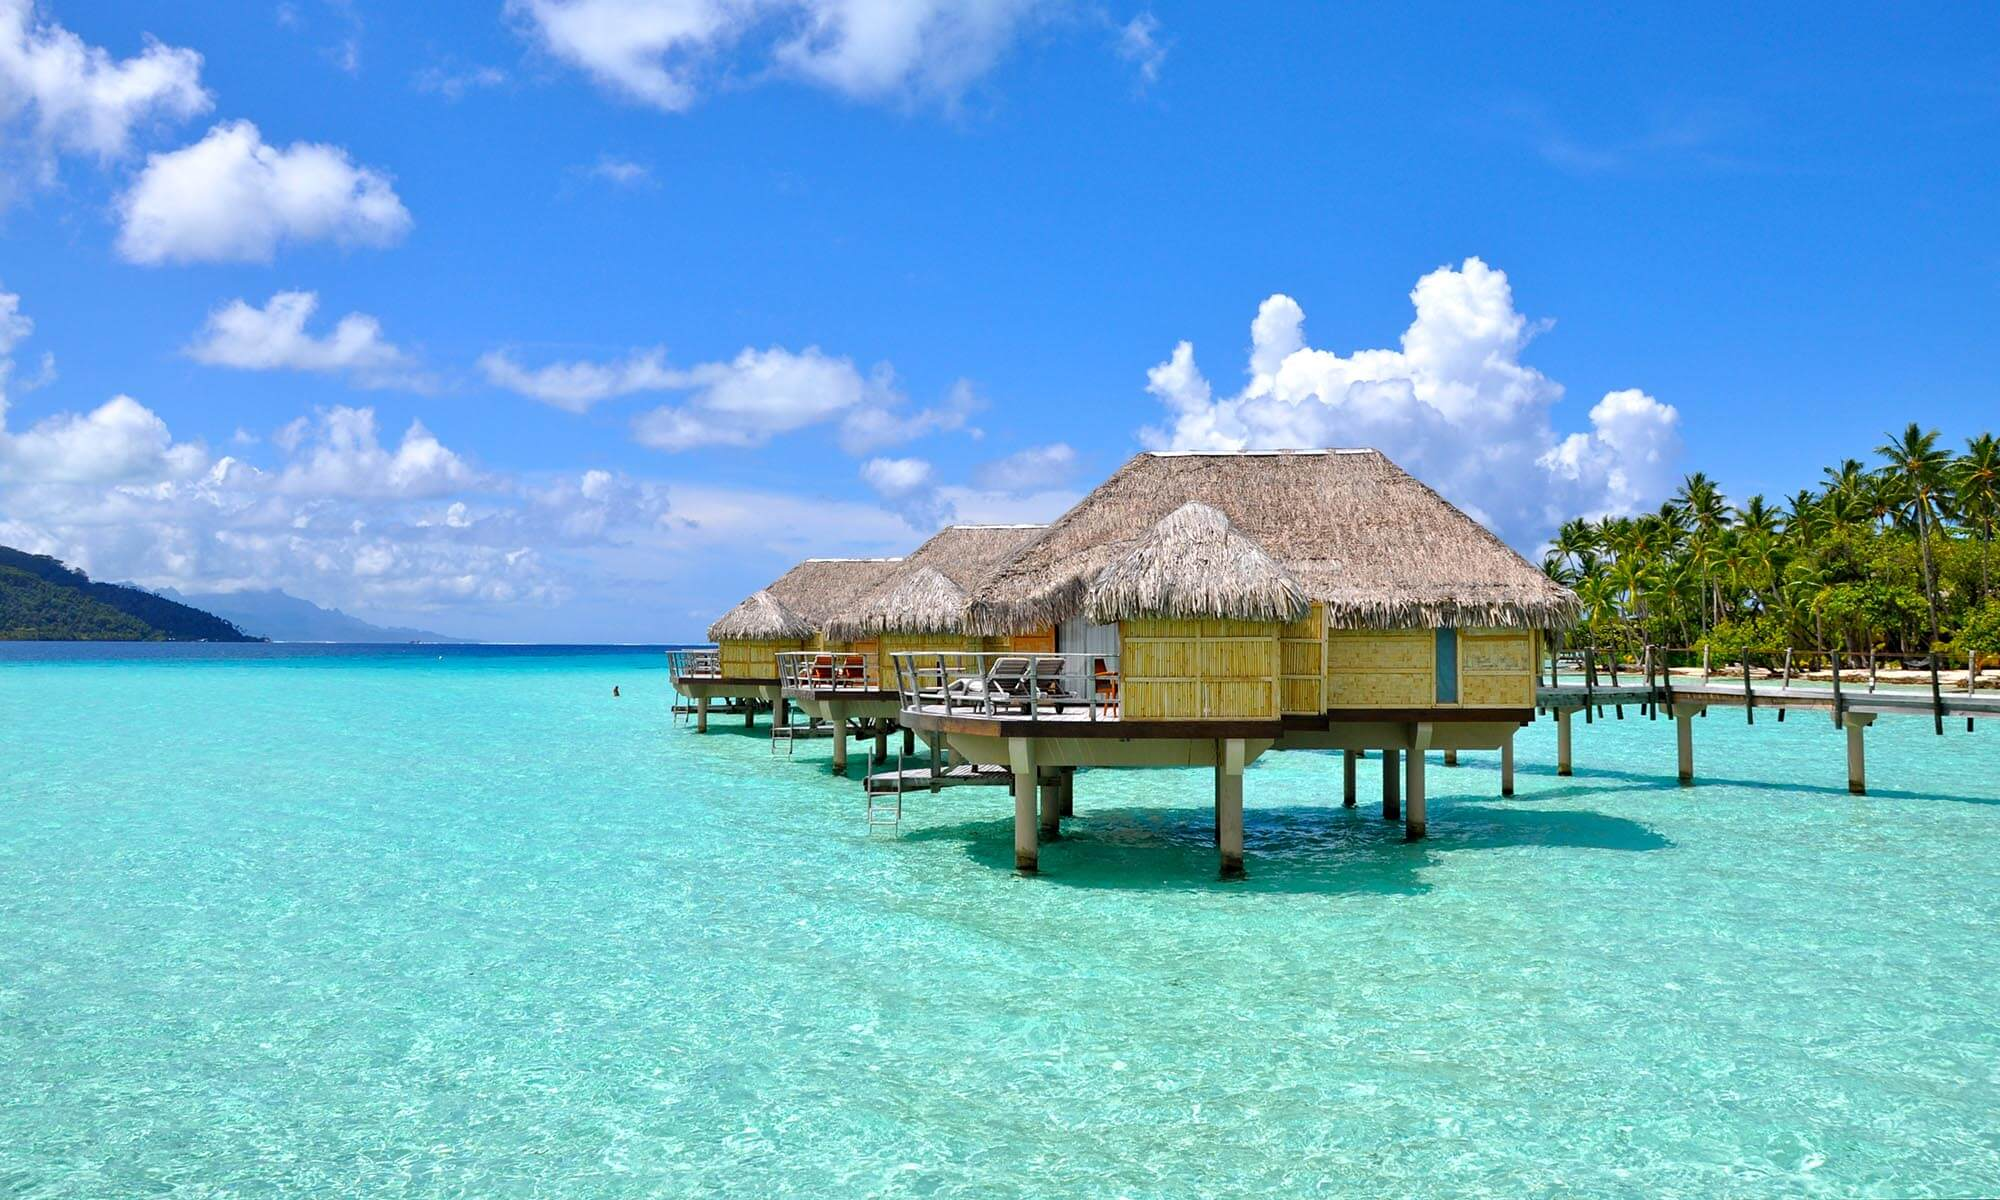 Le Taha'a Overwater Bungalow